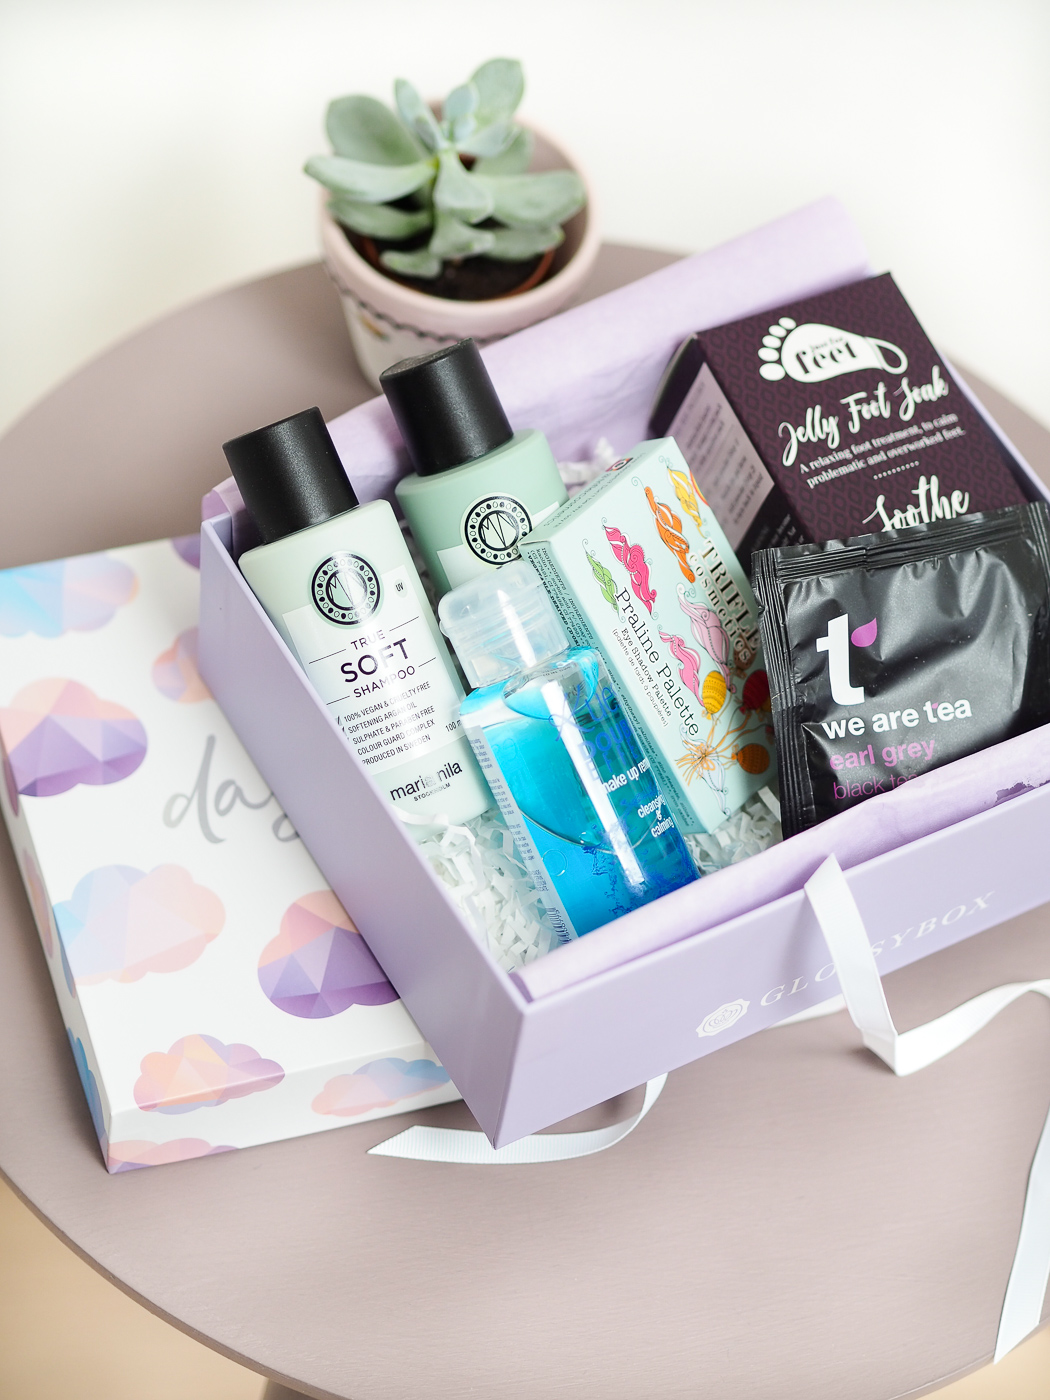 May Glossybox subscription box contents